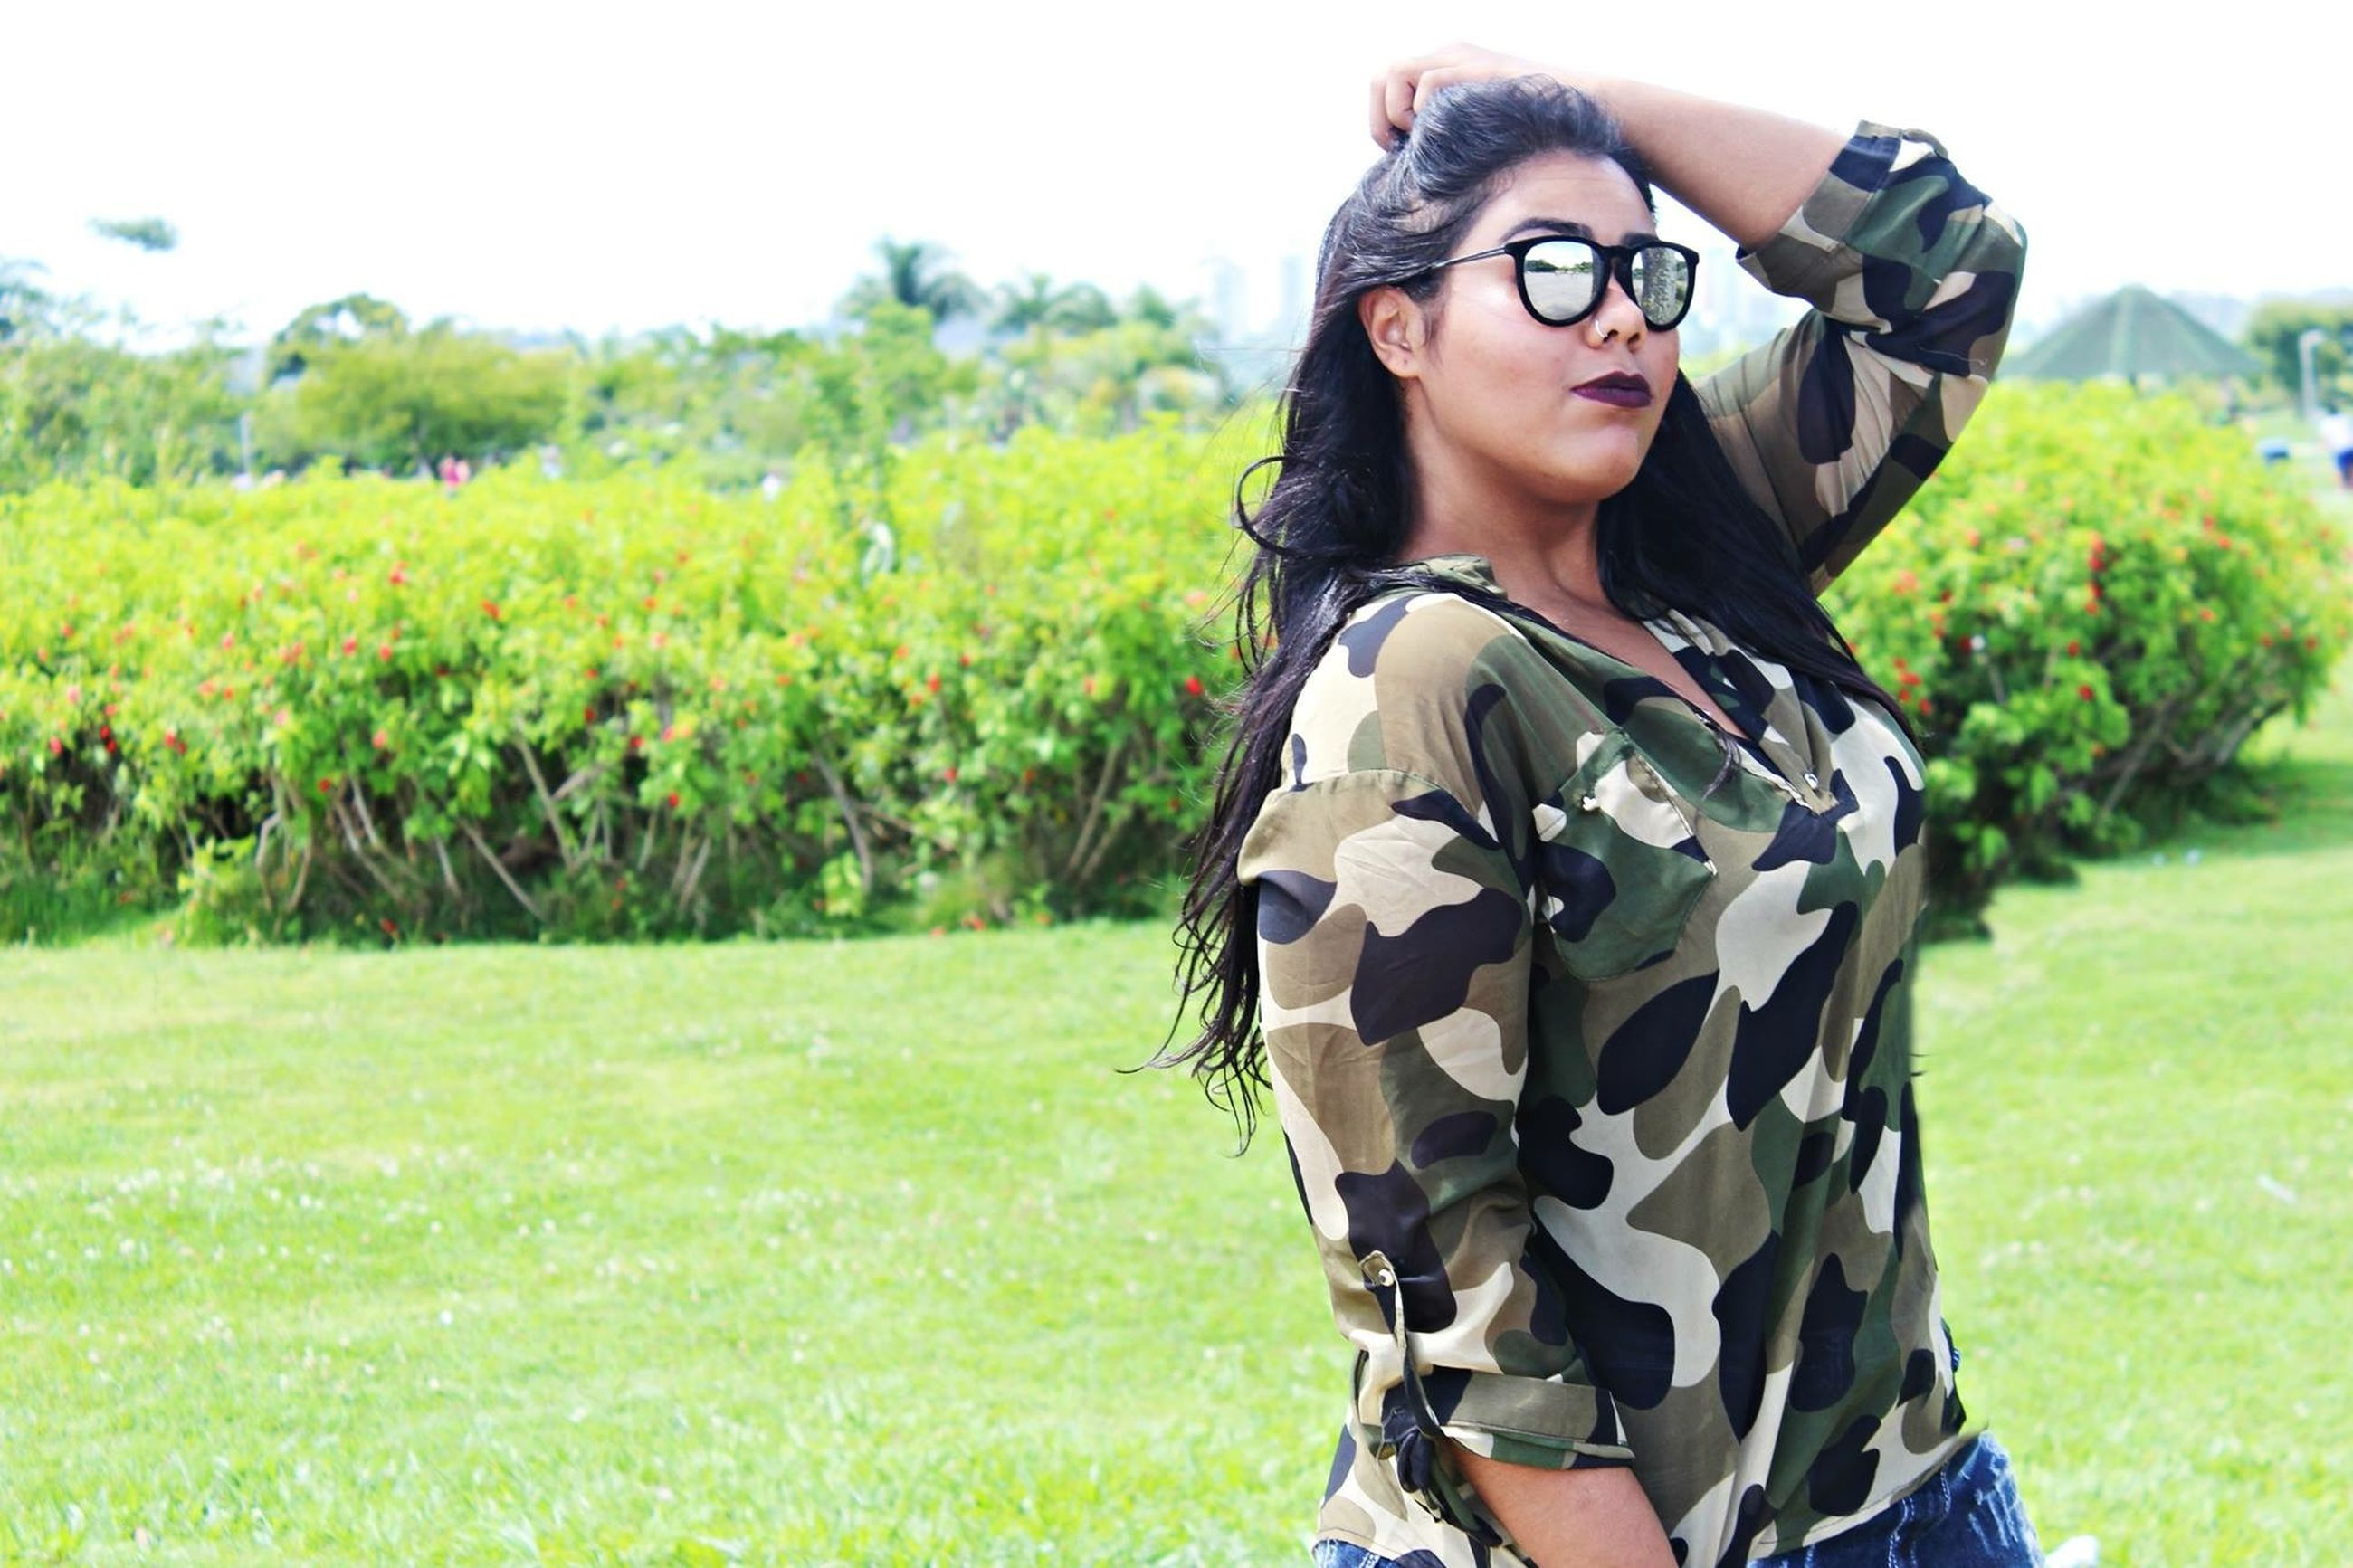 grass, young adult, field, lifestyles, grassy, person, looking at camera, leisure activity, portrait, green color, young women, casual clothing, sunglasses, front view, smiling, three quarter length, standing, tree